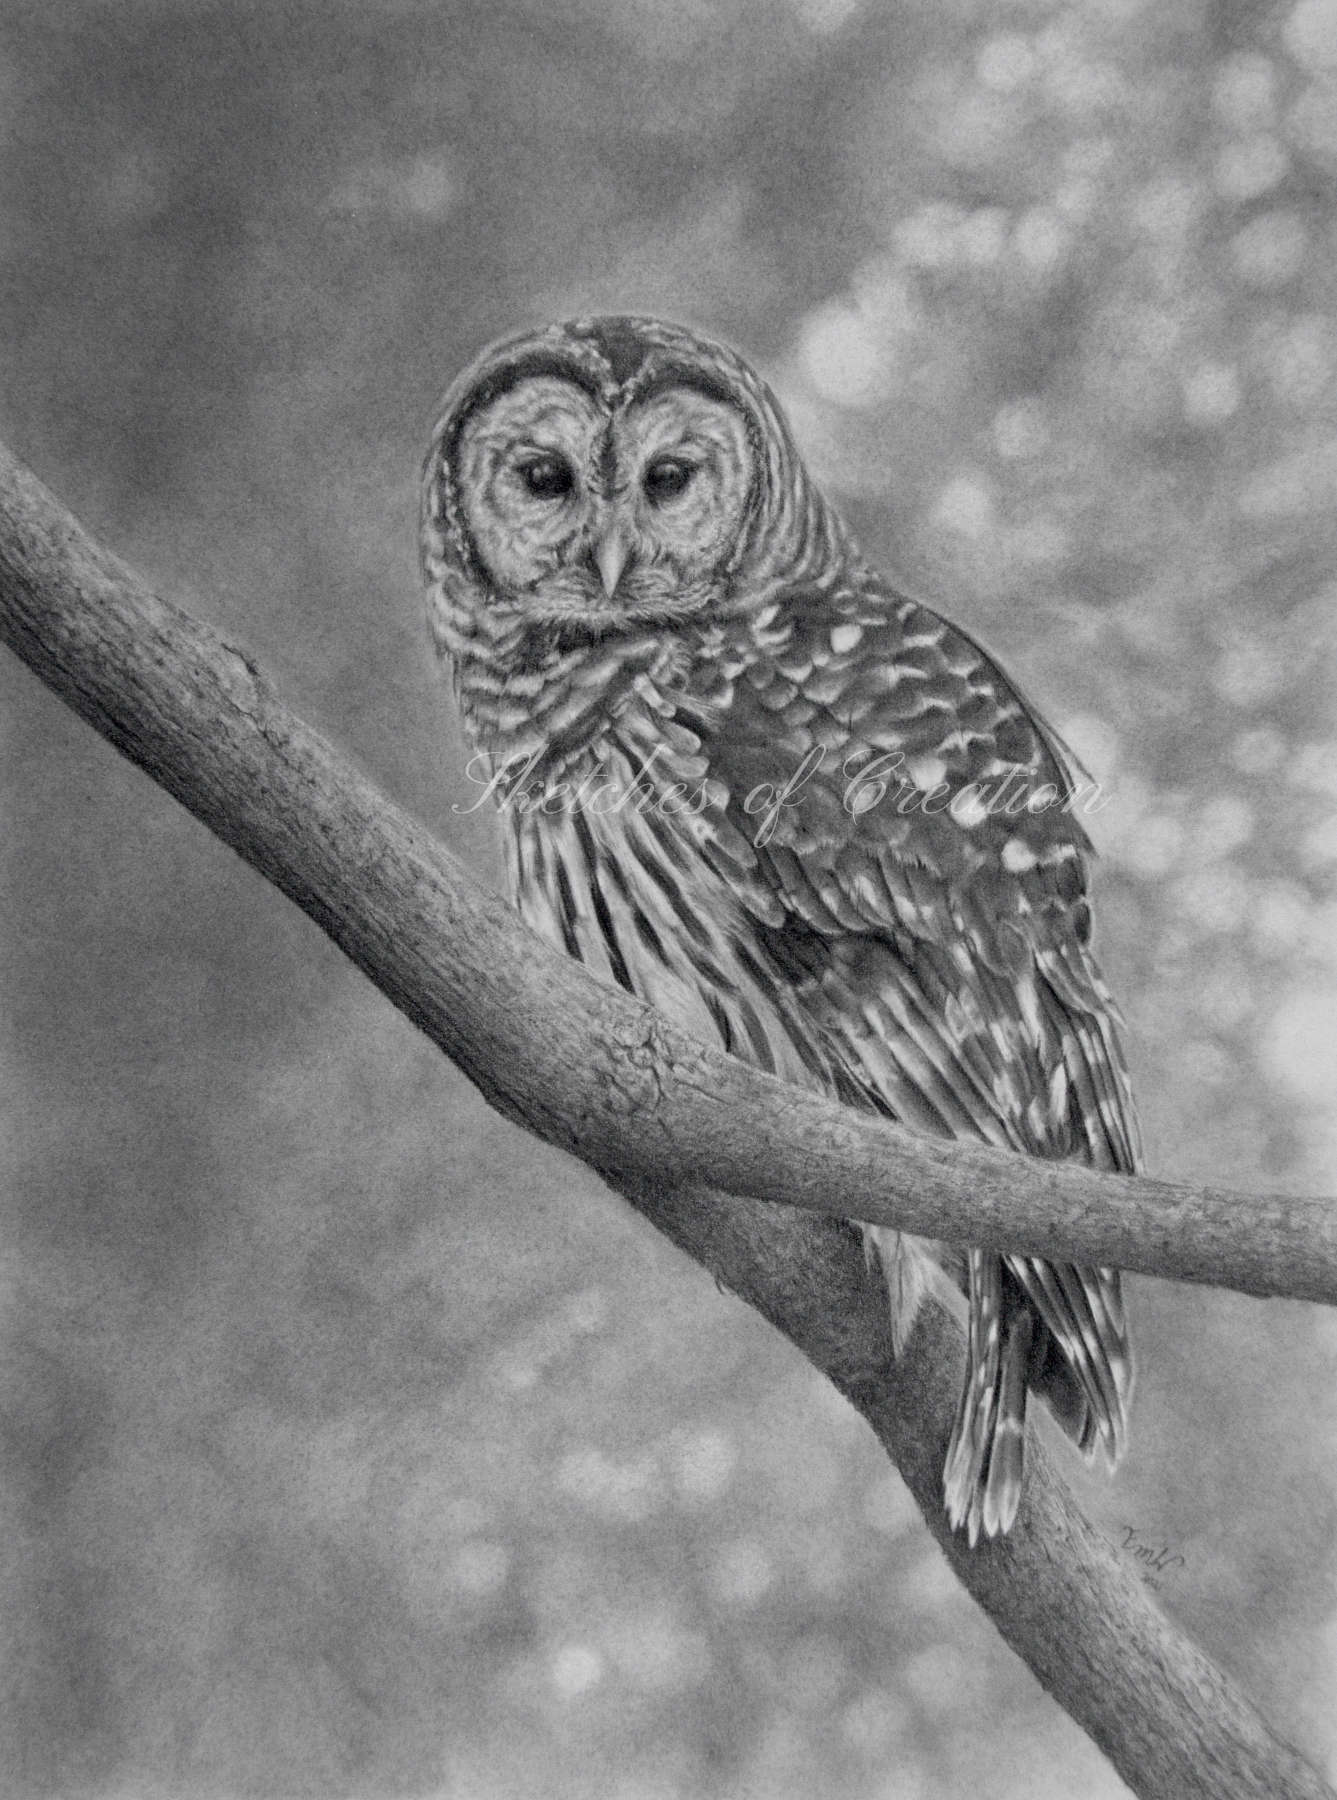 'Barred Owl' a drawing of a Barred Owl on a branch. approximately 9x12 inches plus deckled edge. Completed March 2021